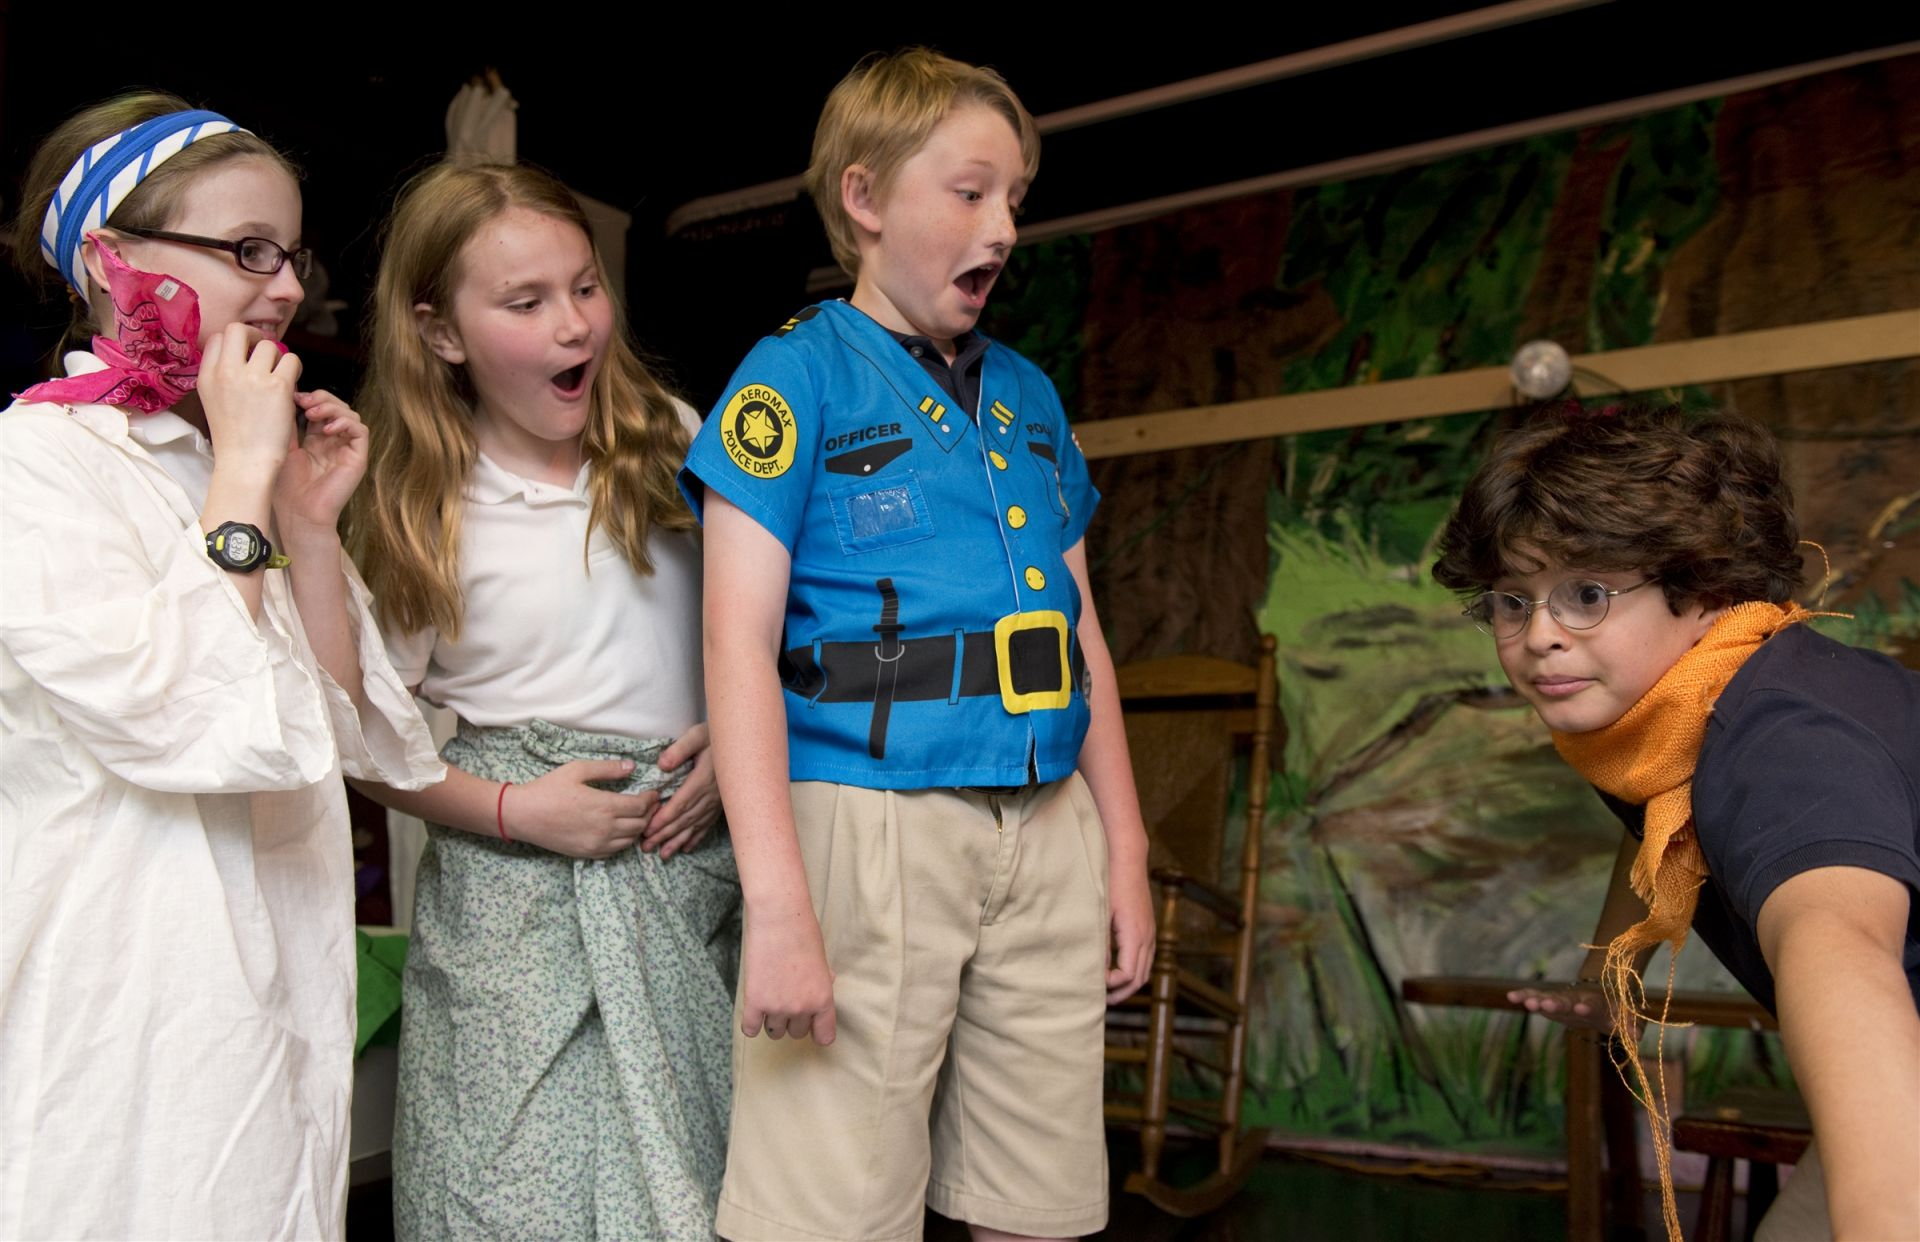 In creative drama classes, the children explore, enjoy, and share new ways of self-expression through movement, pantomime, storytelling, puppetry, improvisation, and small and large group performances.